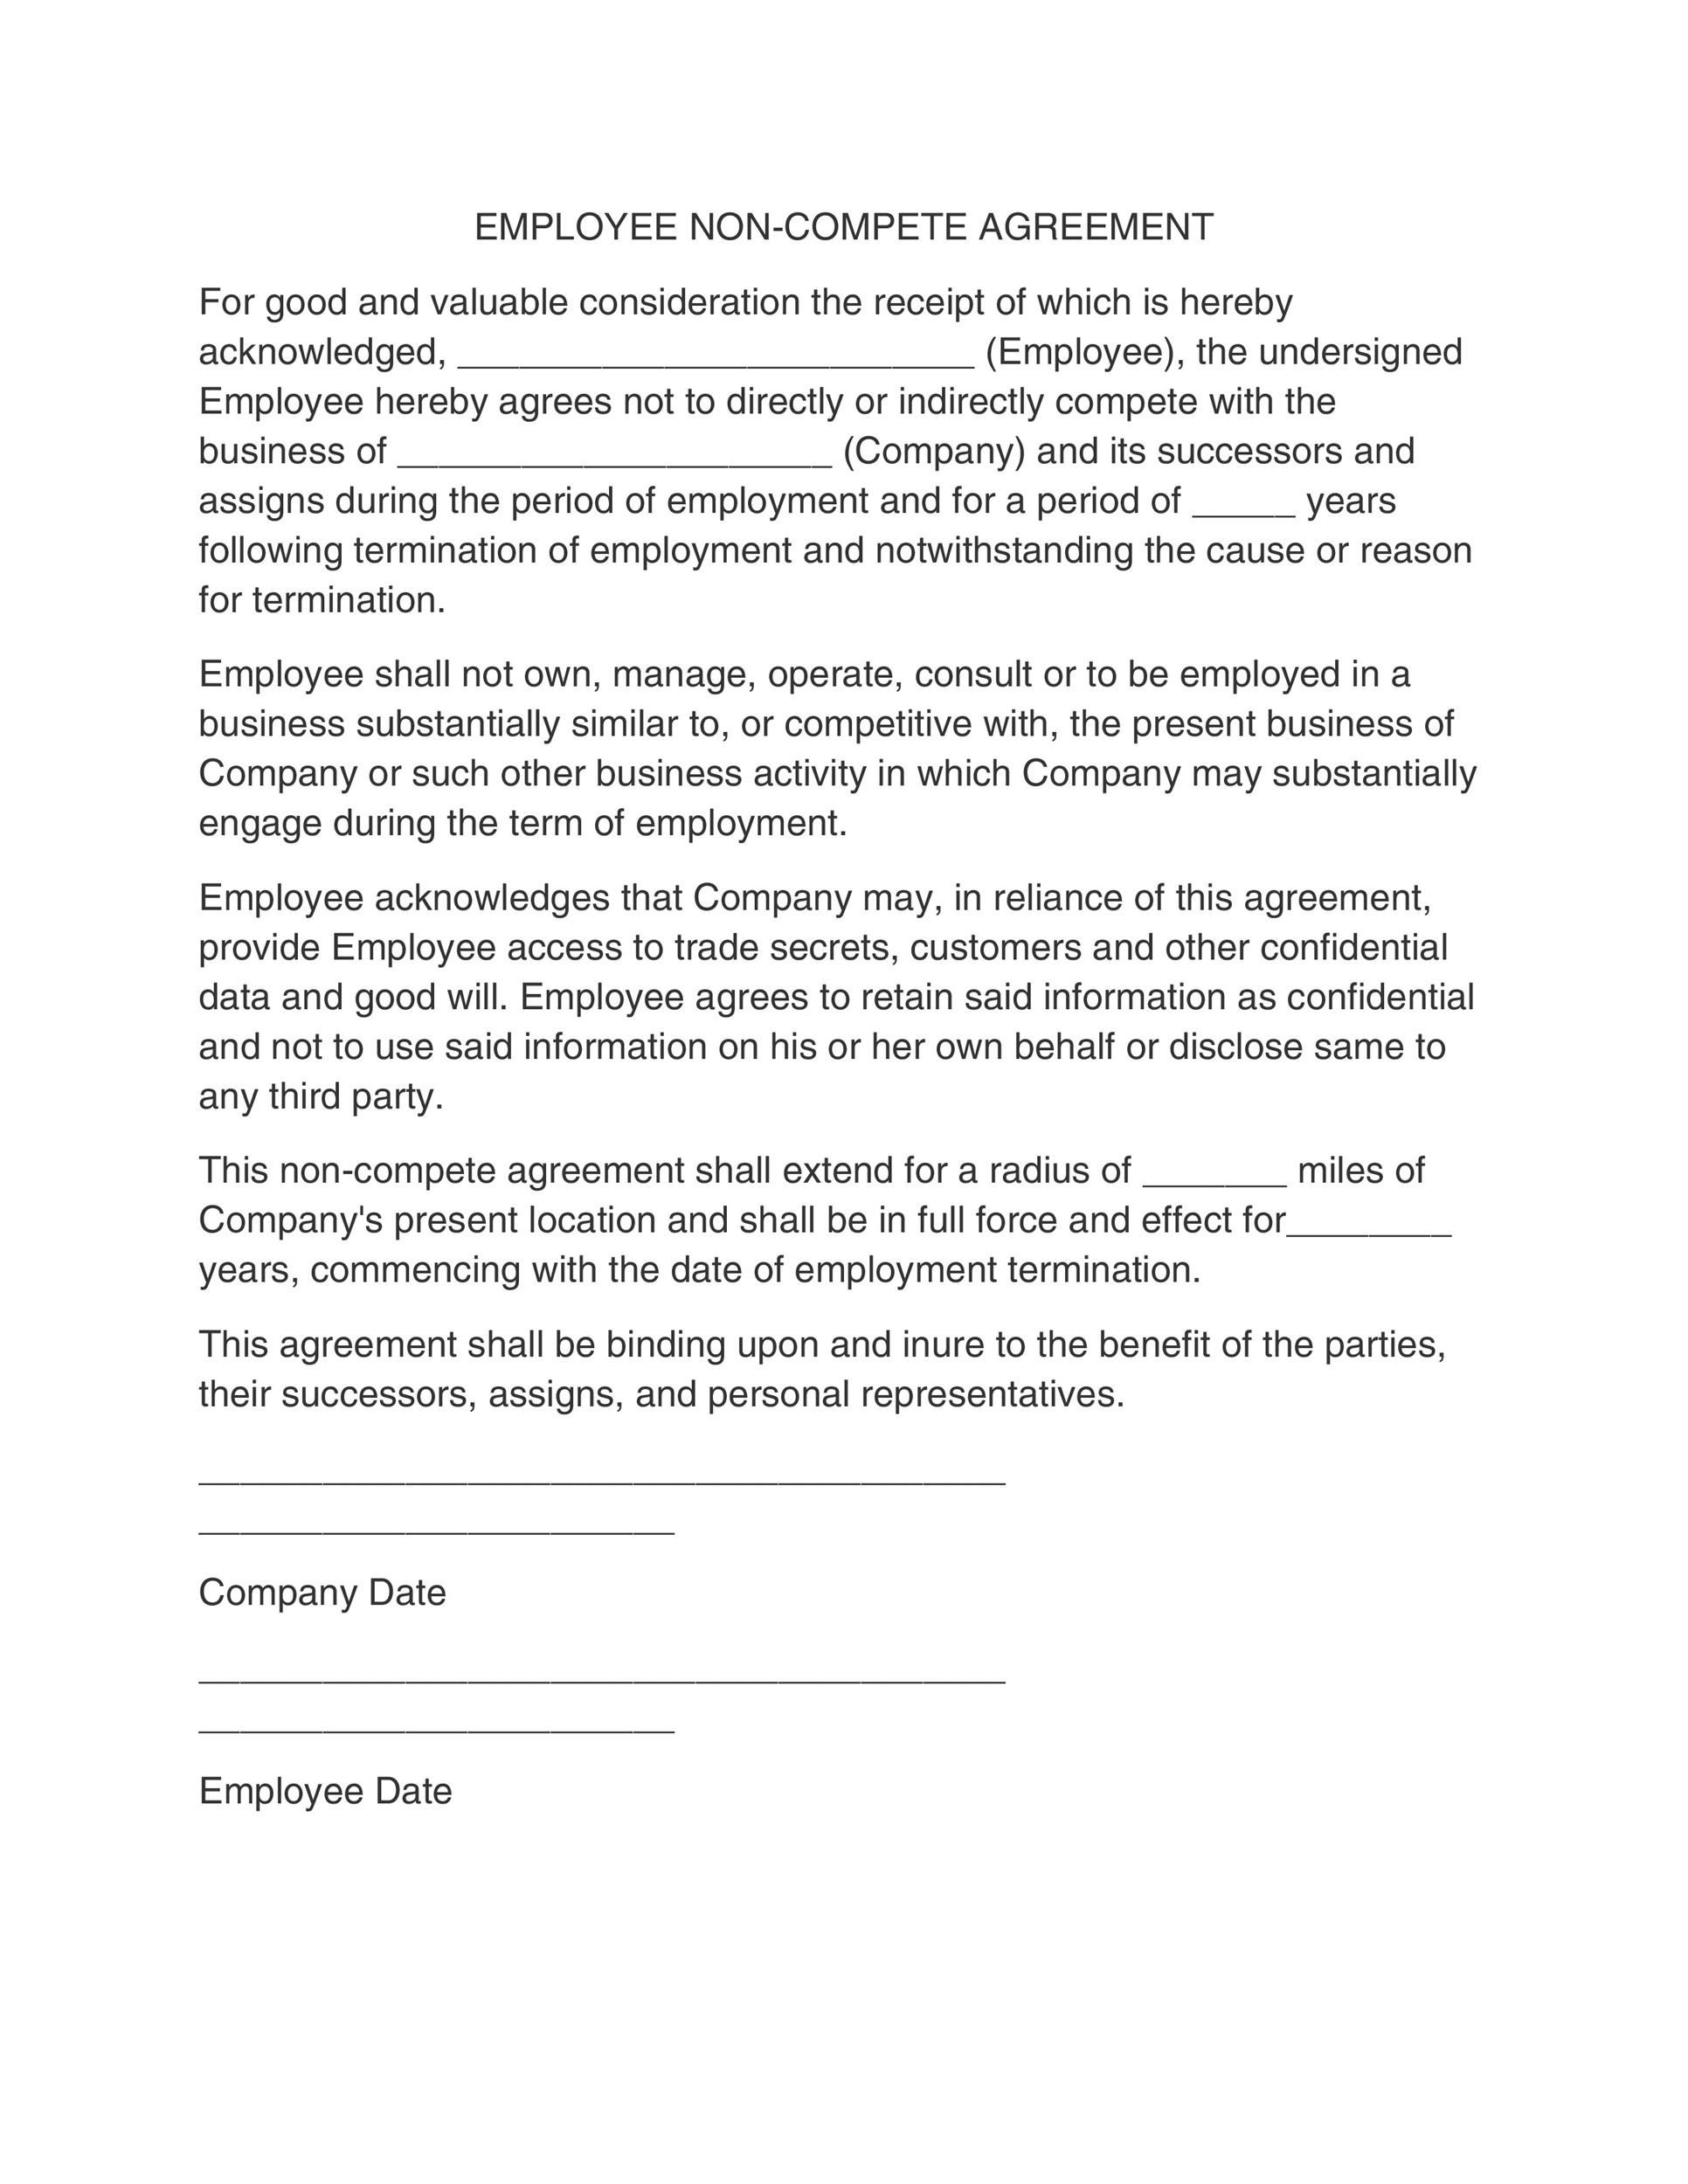 006 Unique Employee Non Compete Agreement Template Photo  Free Confidentiality Non-compete DisclosureFull